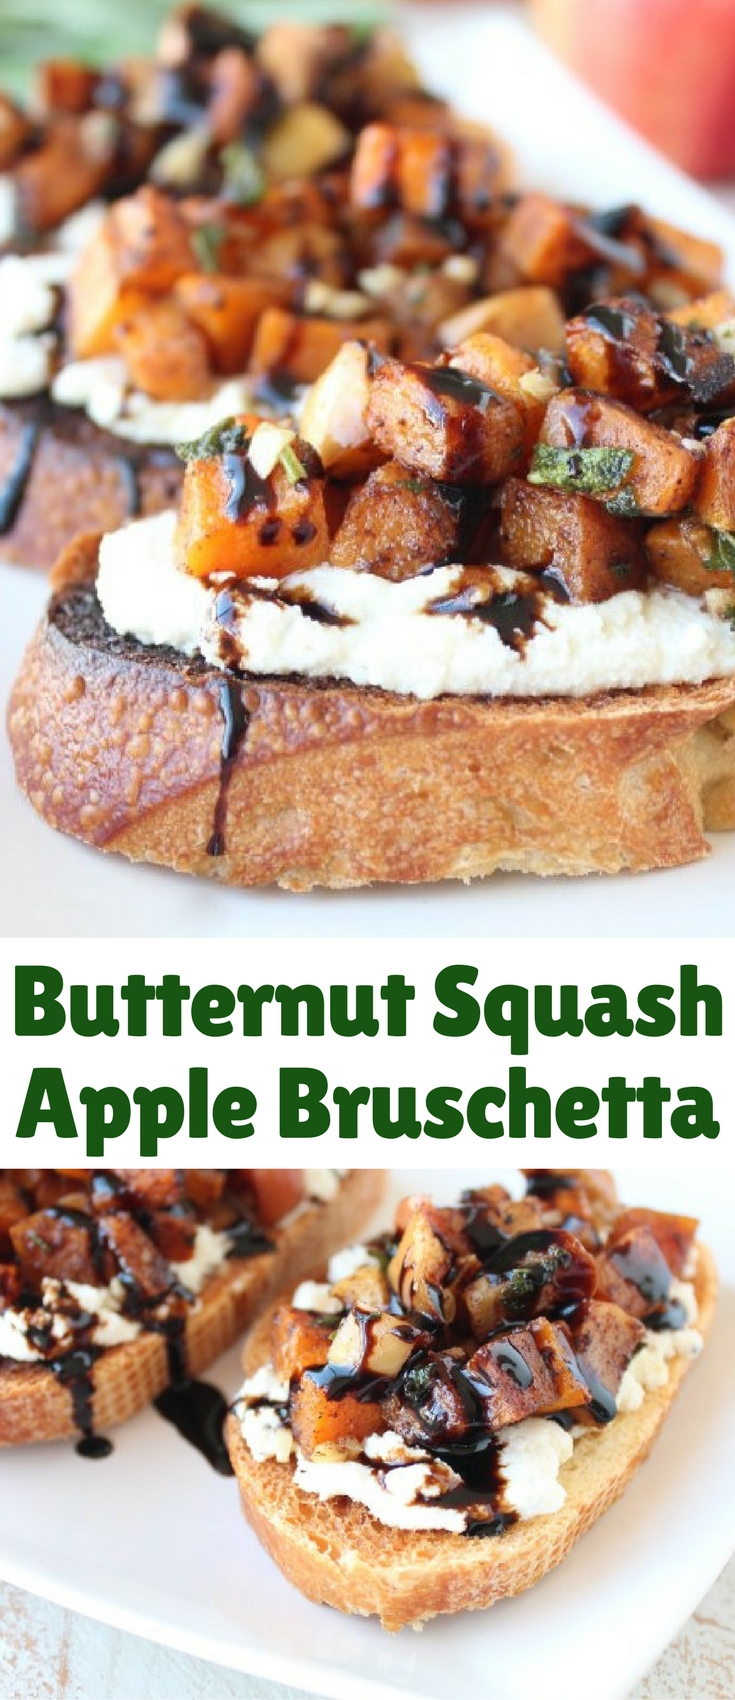 Butternut squash & apples are roasted in fall spices for a delicious twist on bruschetta, making this vegetarian recipe the perfect appetizer for fall!